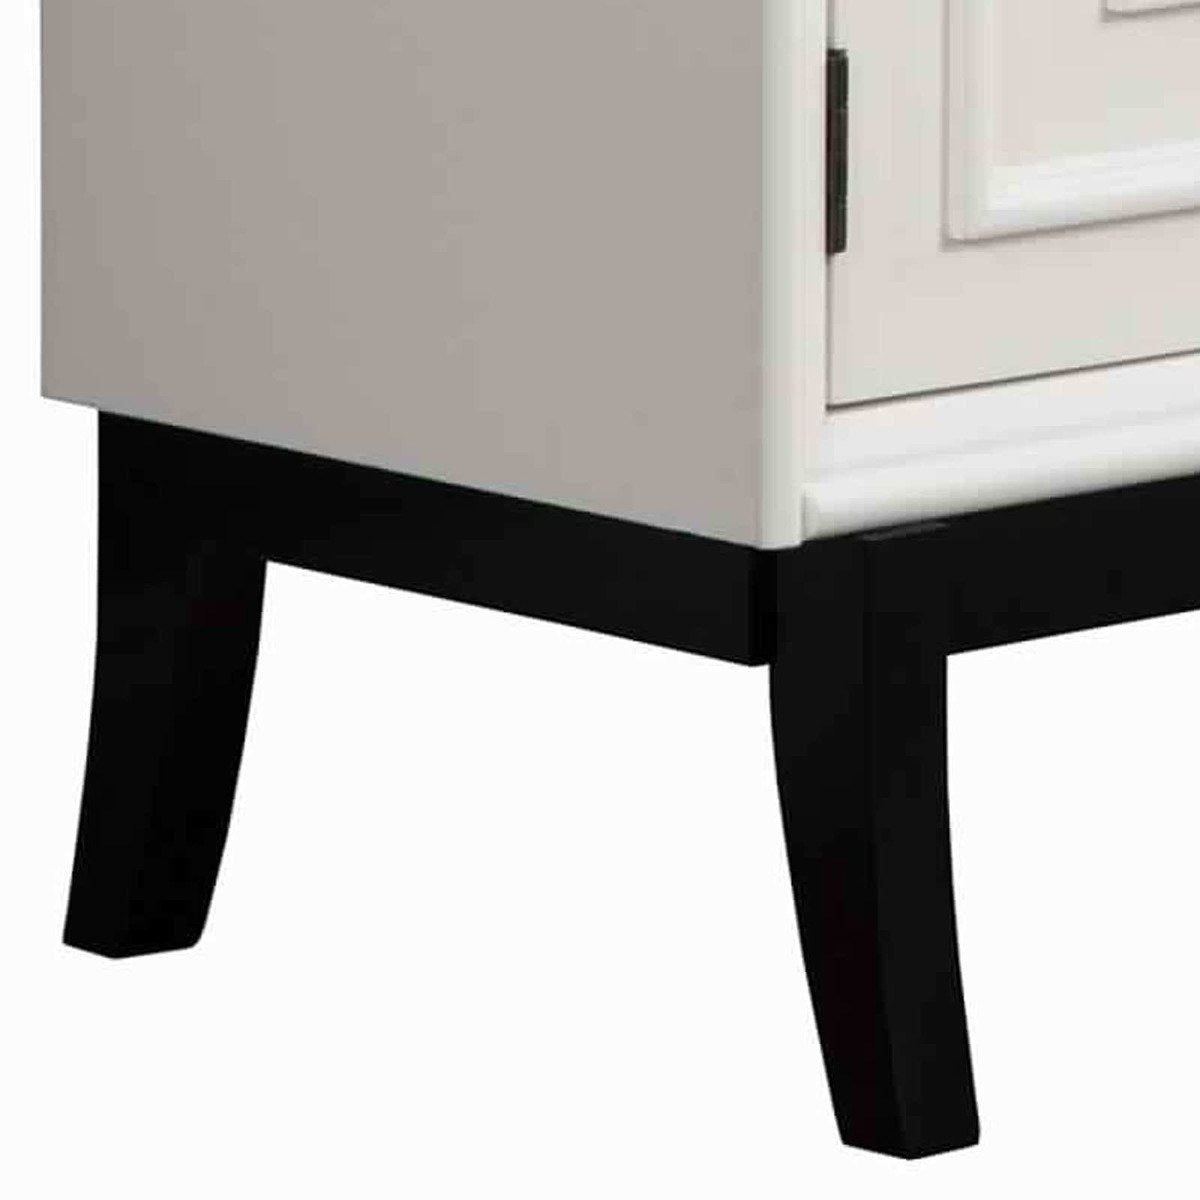 Cabinet & Storage Chests - 2 Door Accent Chest With Molded Rectangular Accents, White And Black